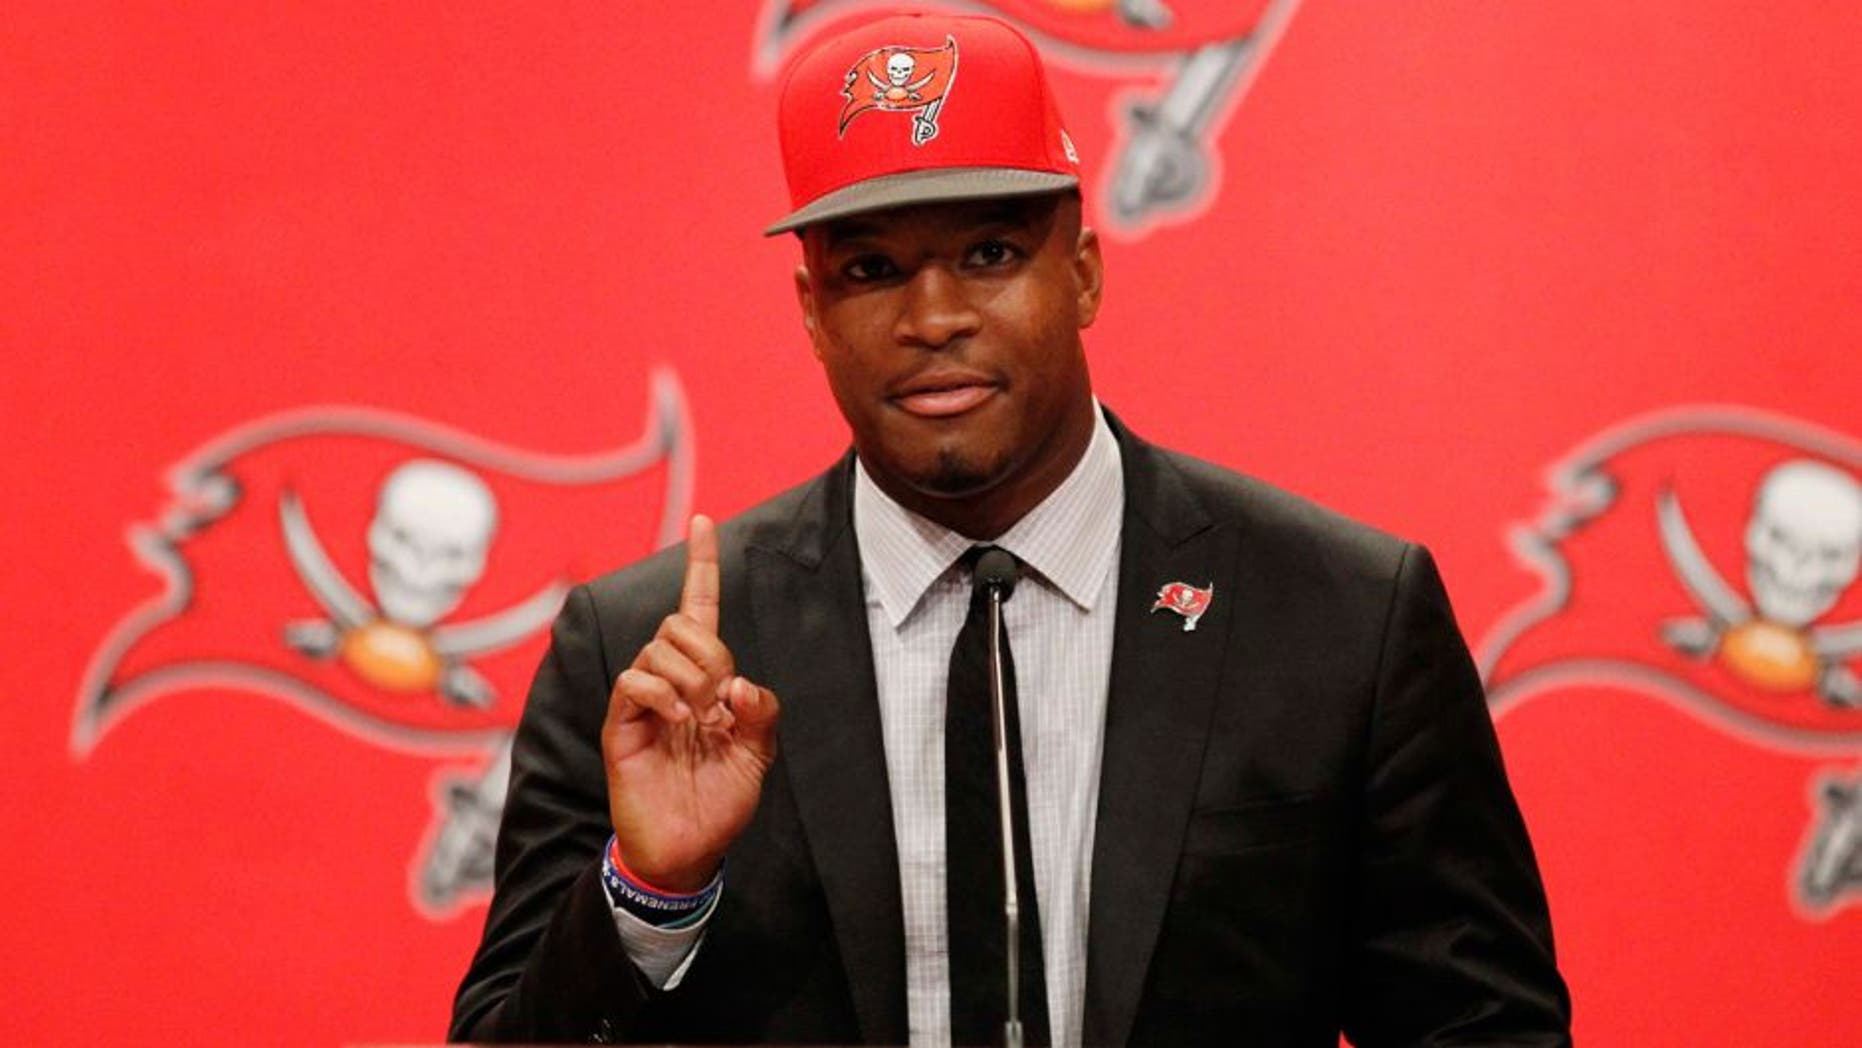 May 1, 2015; Tampa, FL, USA; Tampa Bay Buccaneers quarterback Jameis Winston (3) is introduced at a press conference at One Buc Place the day after being selected as the number one overall pick in the 2015 NFL Draft. Mandatory Credit: Kim Klement-USA TODAY Sports